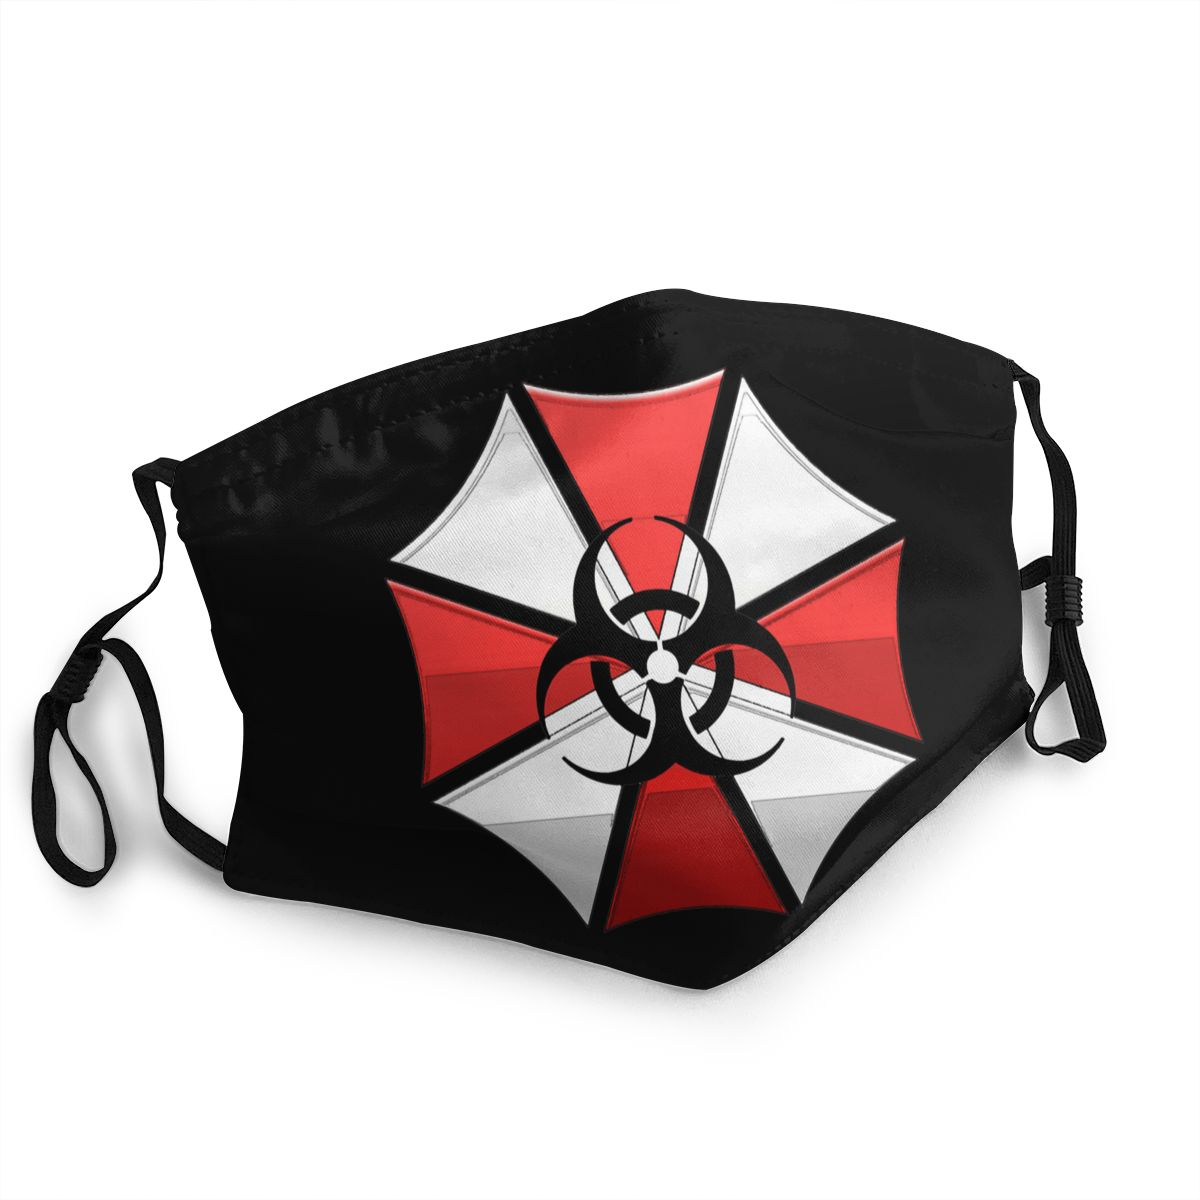 Umbrella Corp Mask Funny Unisex Cute Anti-bacterial Dust Adult Dust Mask Winter Mouth Mask High Quality